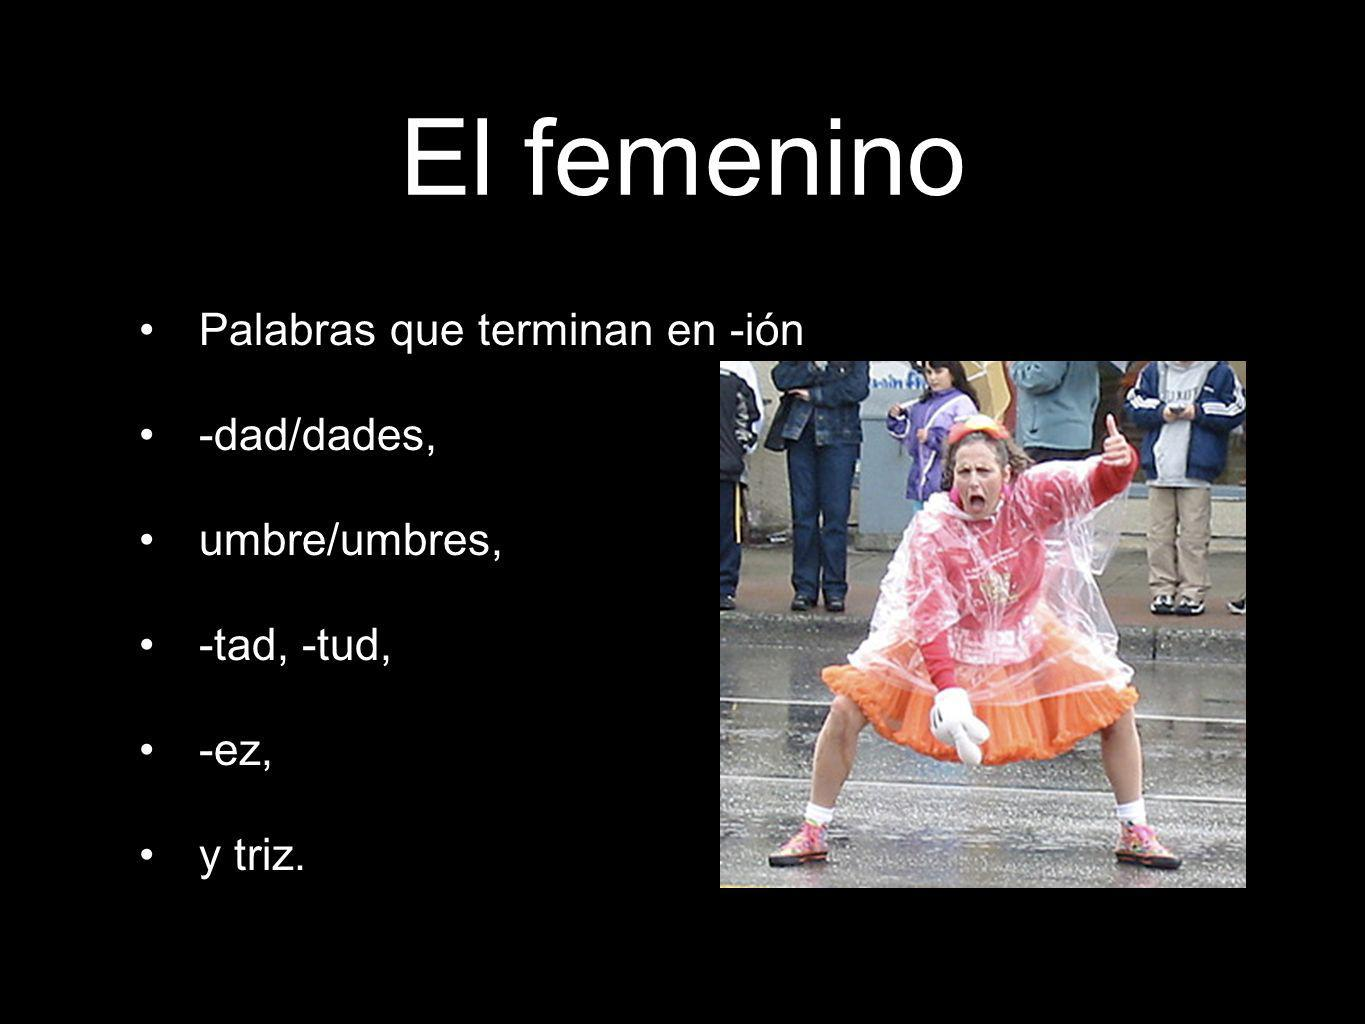 El femenino When a feminine noun begins with a stressed a- or ha- syllable, its singular form will have an el instead of la (and un instead of una as an indefinite article).